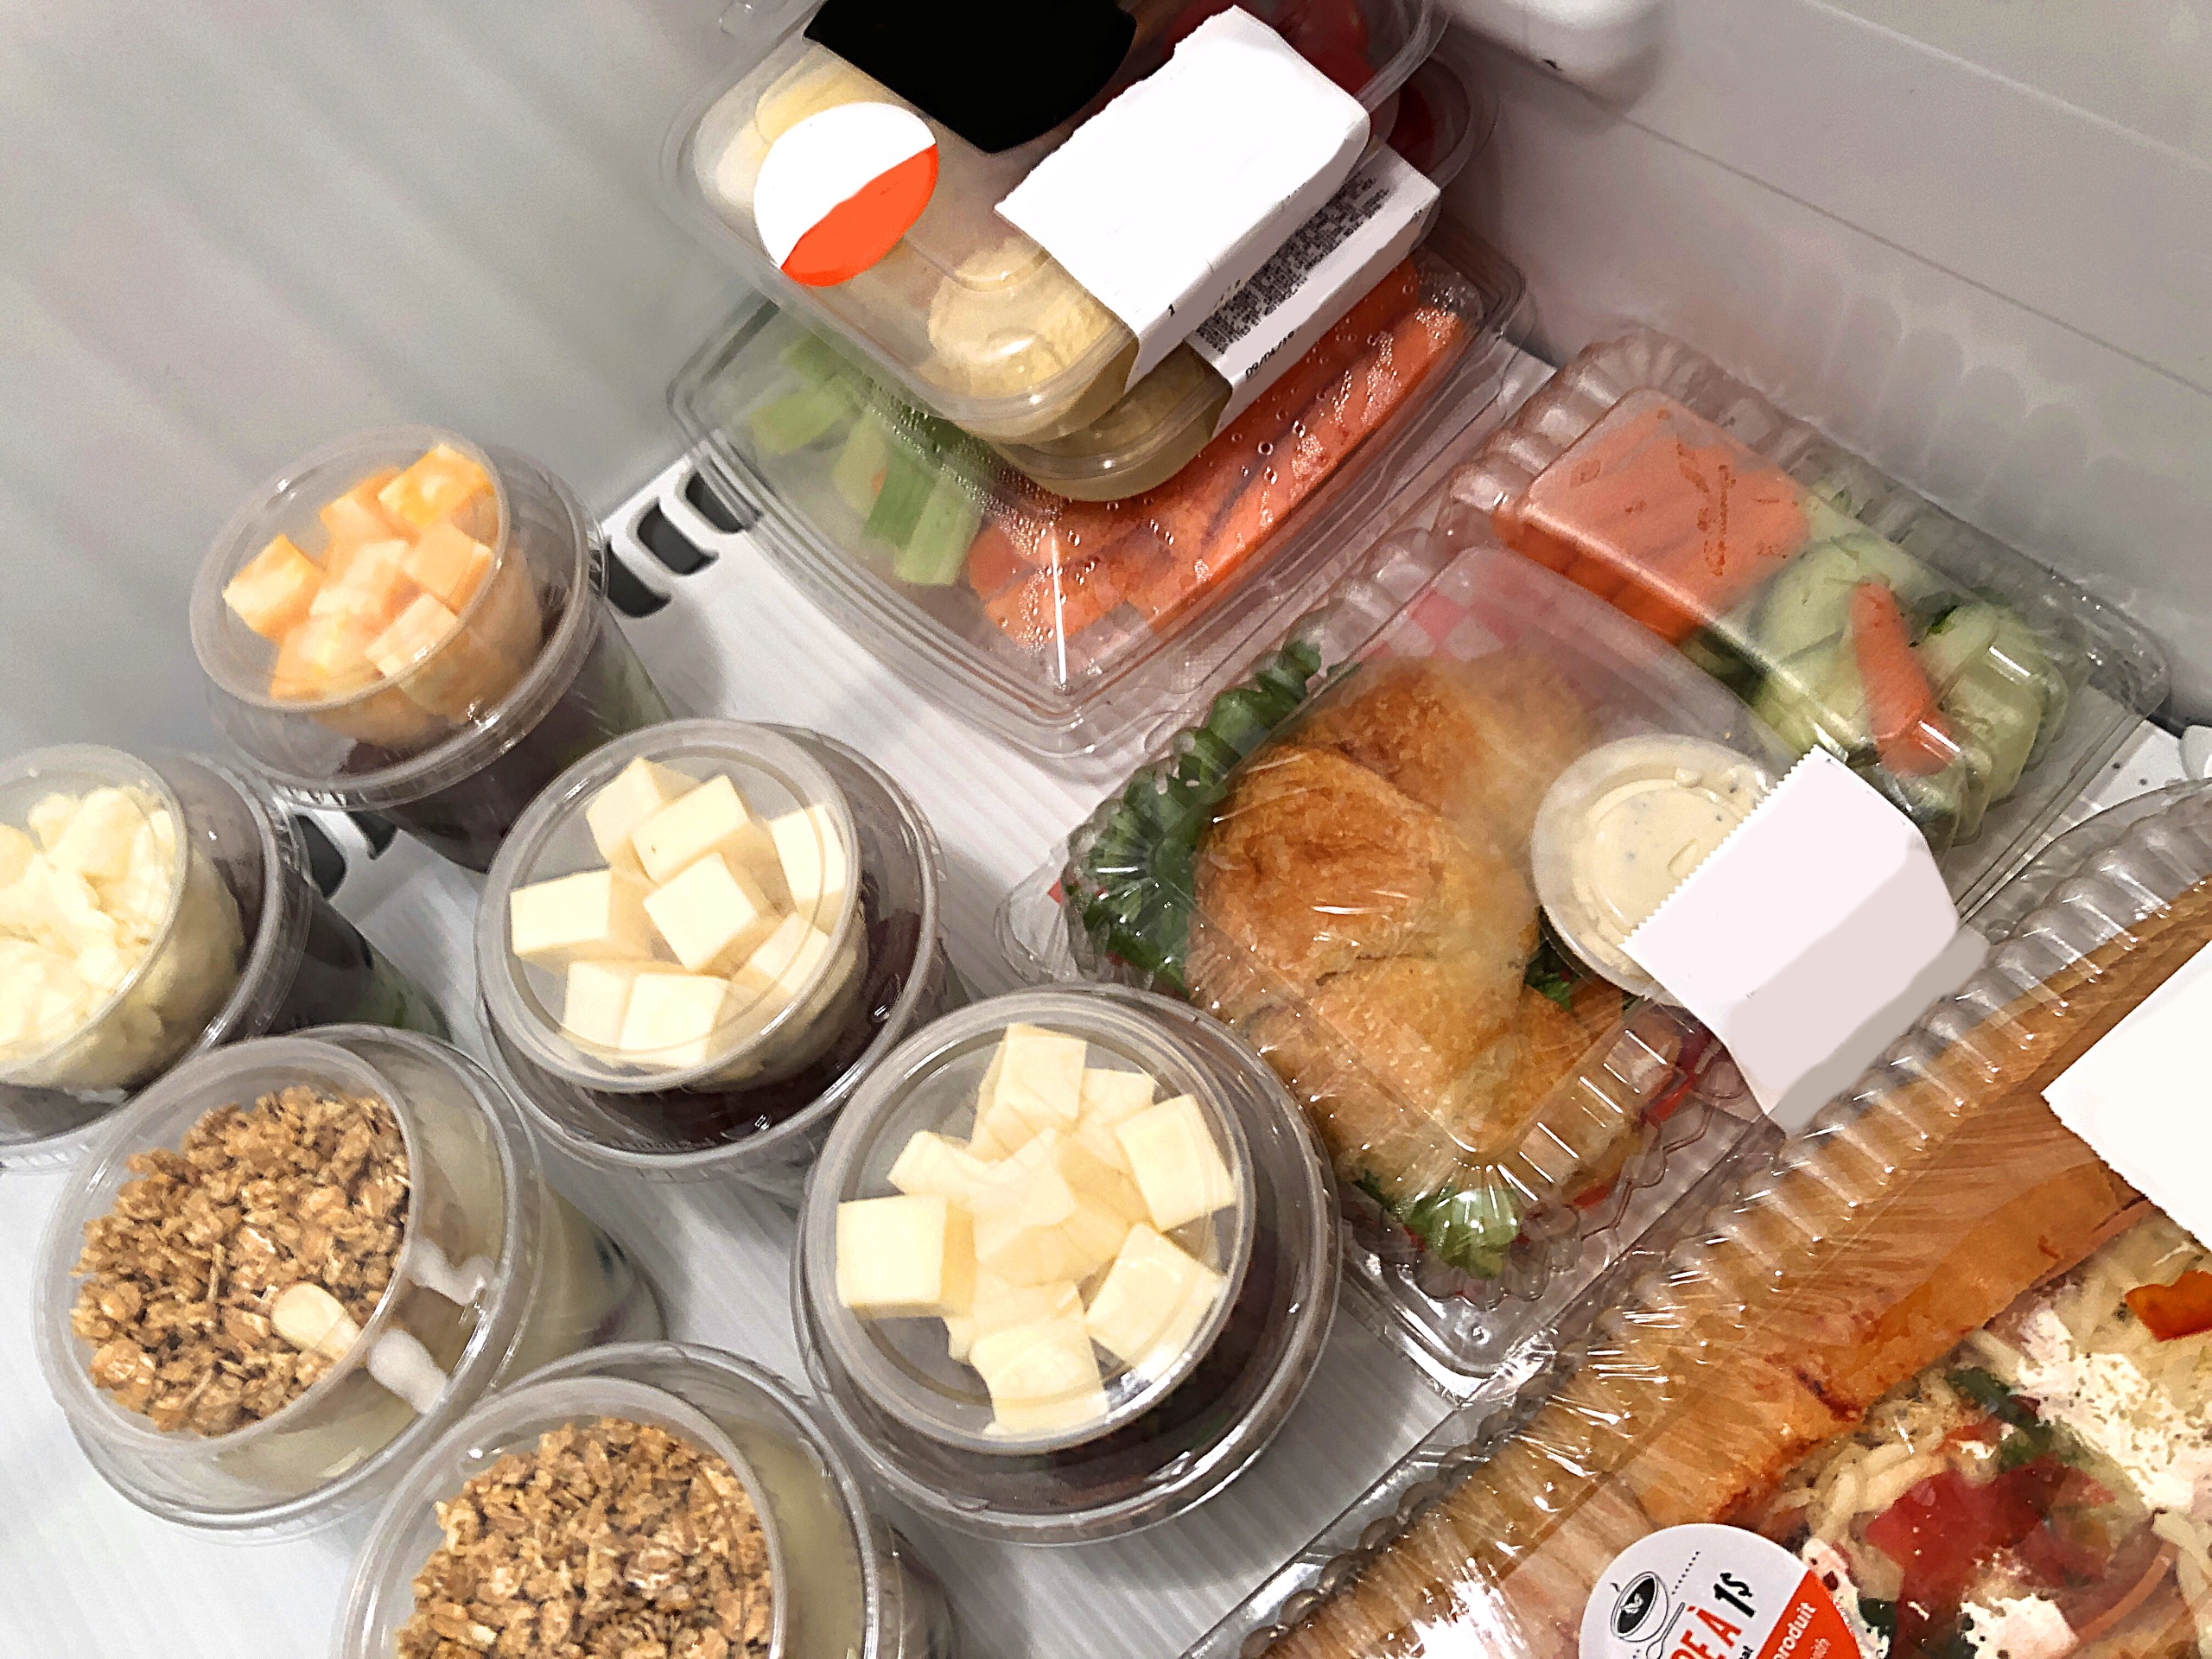 Healthy vending machine options from Breaktime Beverage